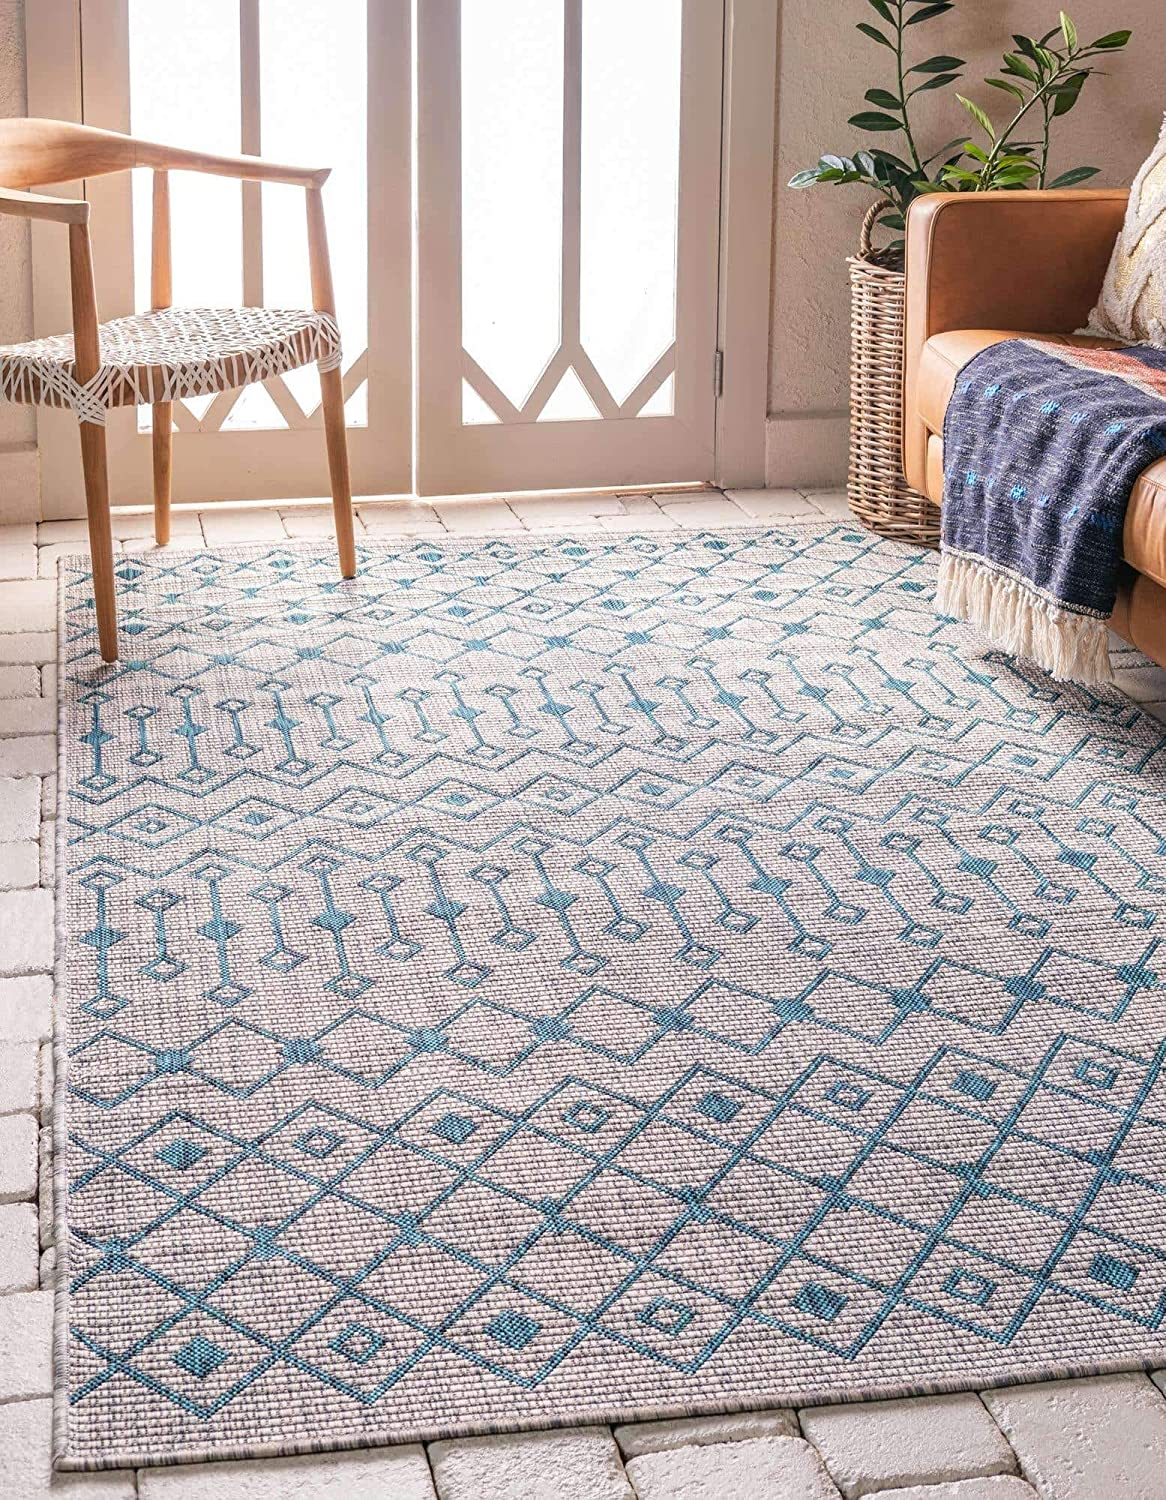 Unique Loom shop Trellis Collection Max 77% OFF Tribal Transitional Geometric Ind